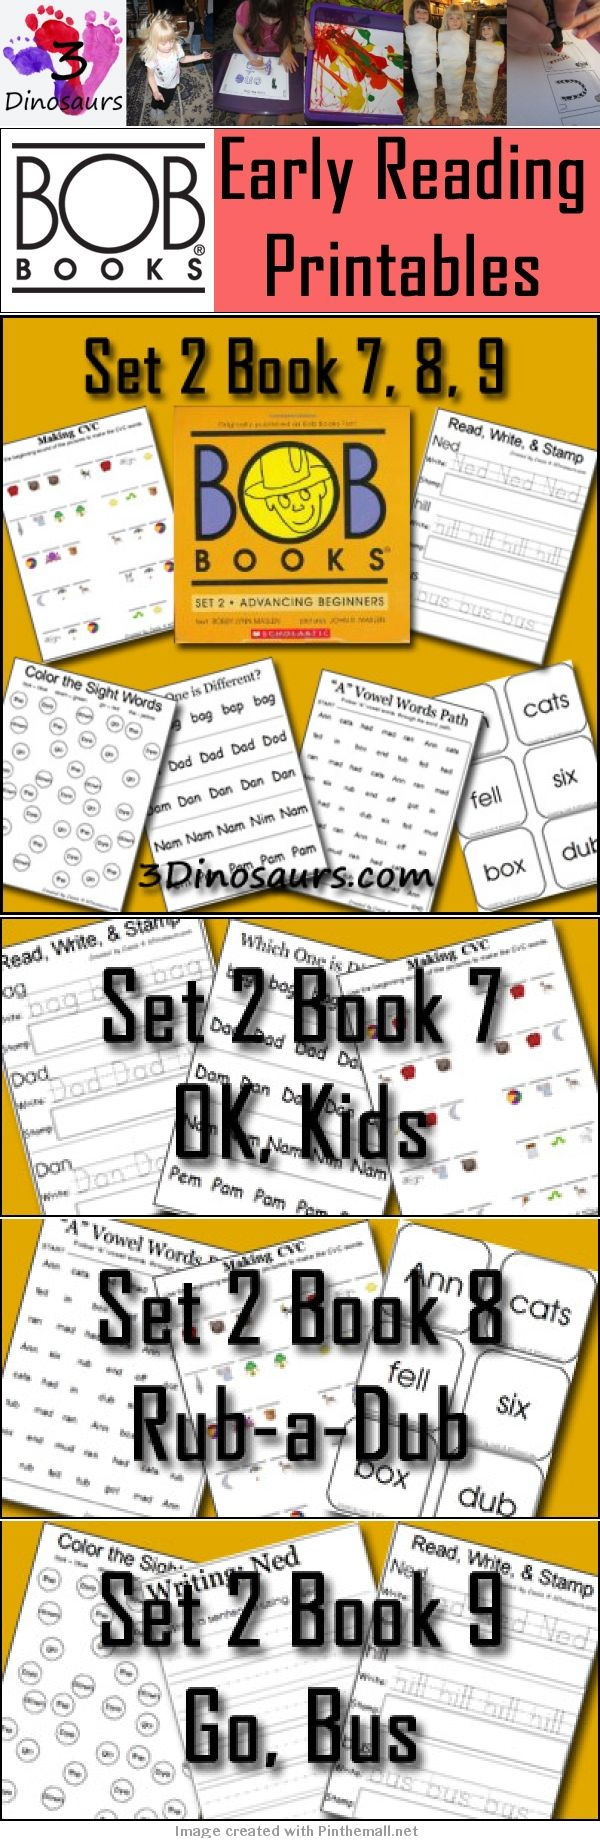 The FREE BOB Book printables are here for books 7-9 of Set 2!   Book 7: OK, Kids   Book 8: Rub-a-Dub   Book 9: Go, Bus   Short Vowels i u and o   This week you will find Vowel Word Paths, Read Write & Stamp, Making BOB Book Words, Write a Sentence with the Word, Which One is Different, Color the Sight Word, and Cube Flashcards. All the words from the books are used. I hope you enjoy them as much as we have!